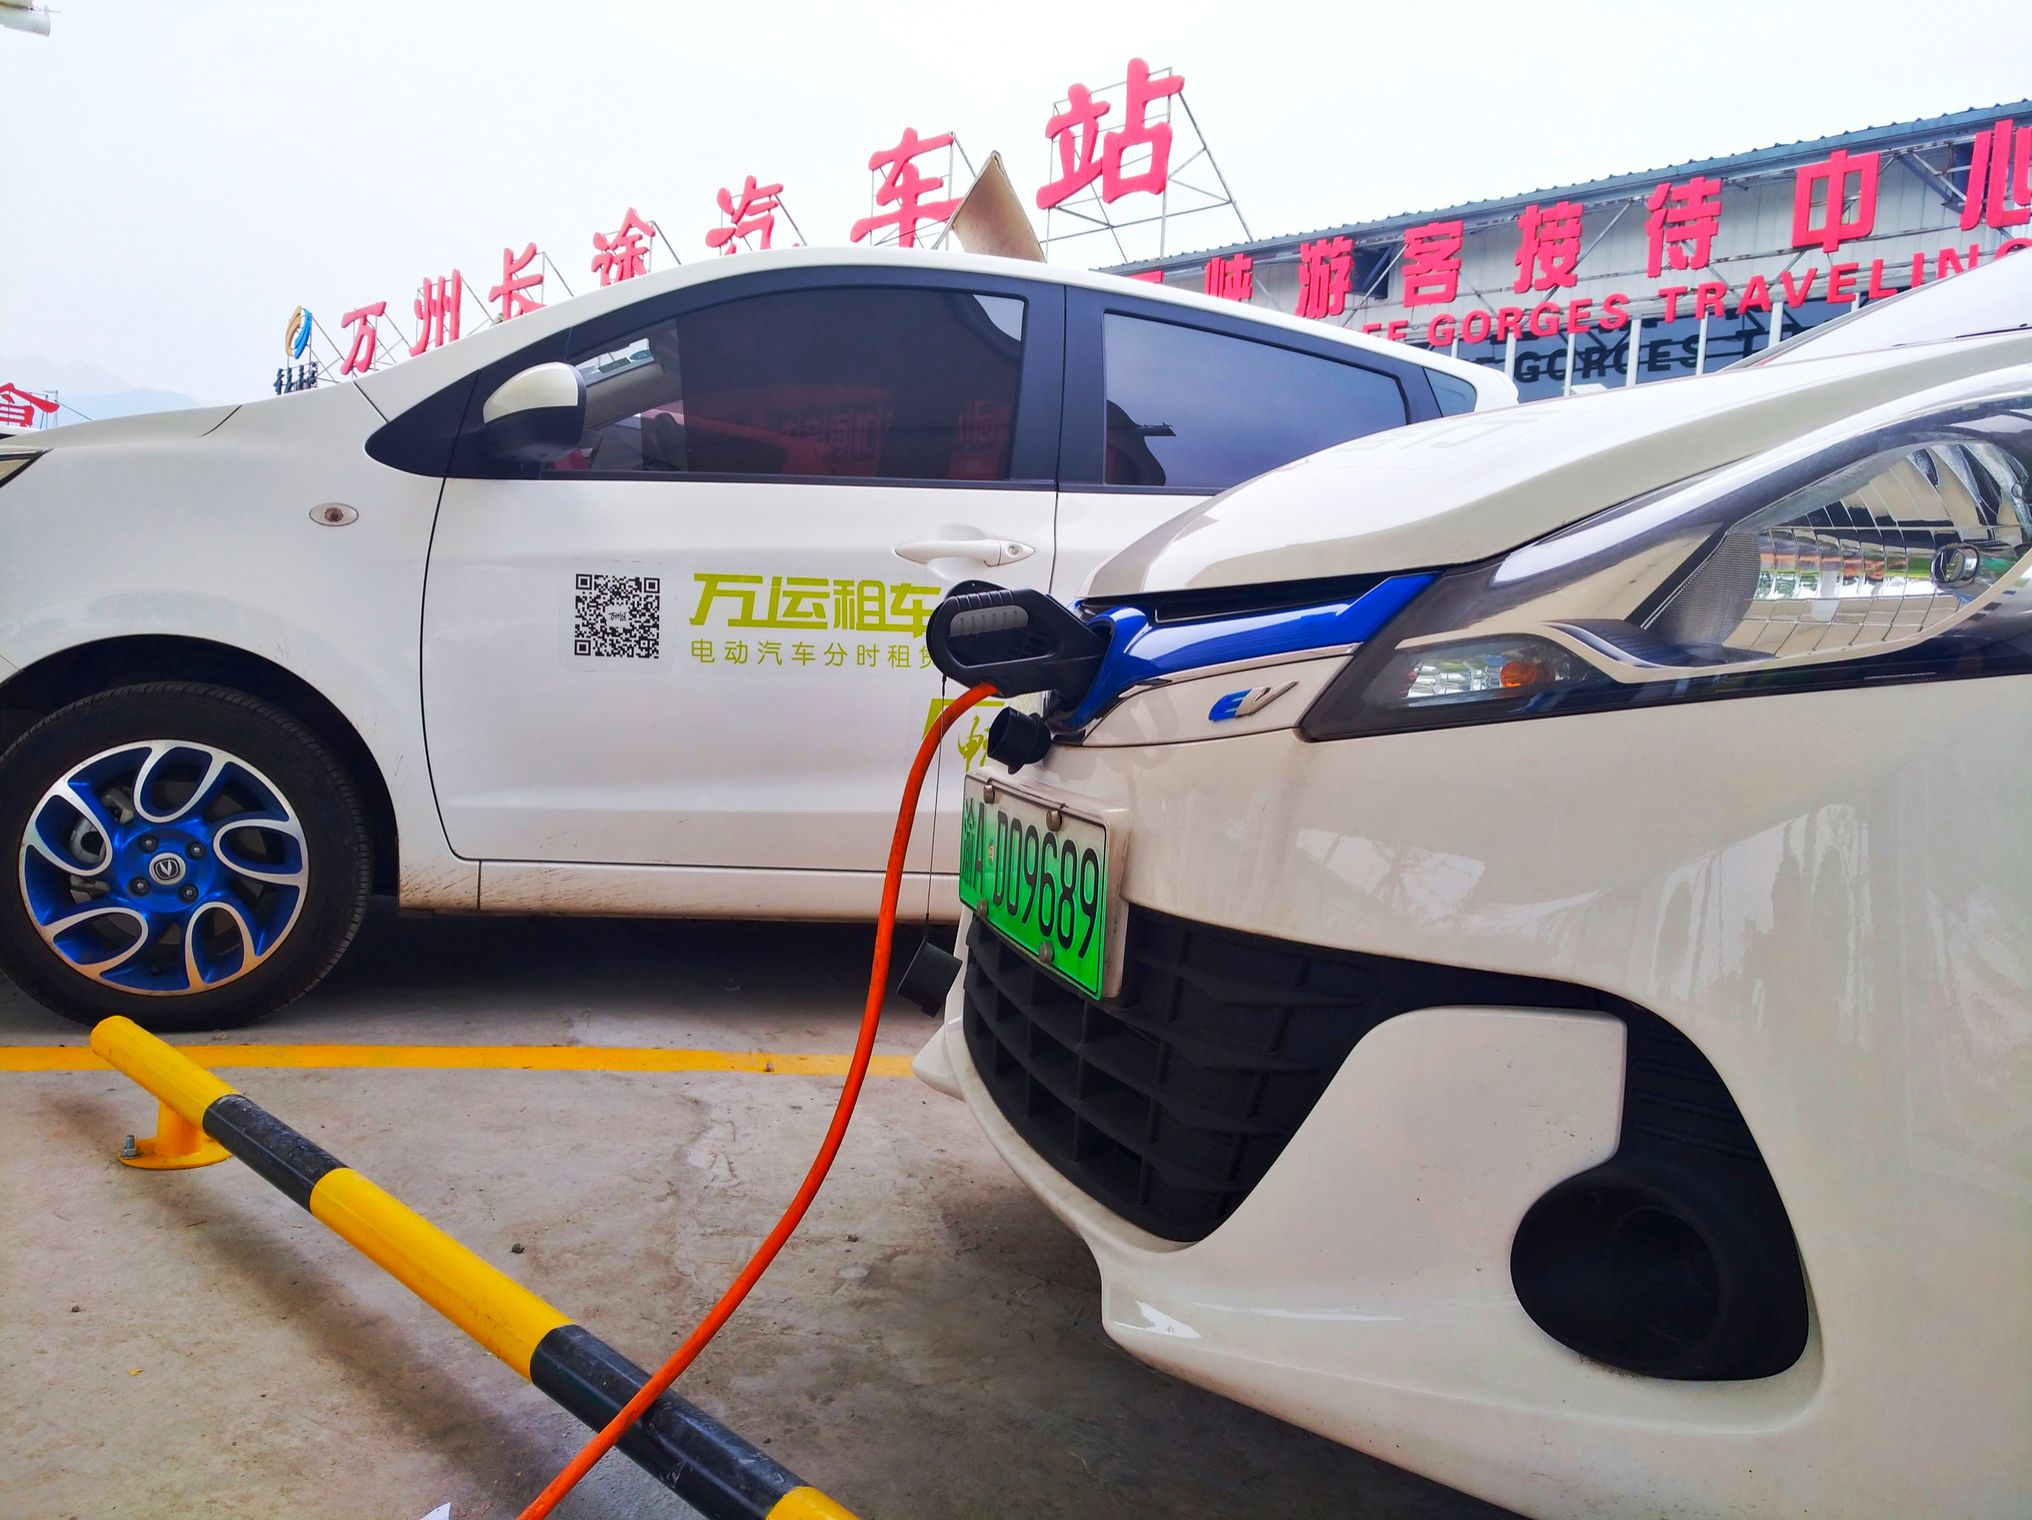 China's EV market is grappling with rampant fraud, the report claims.